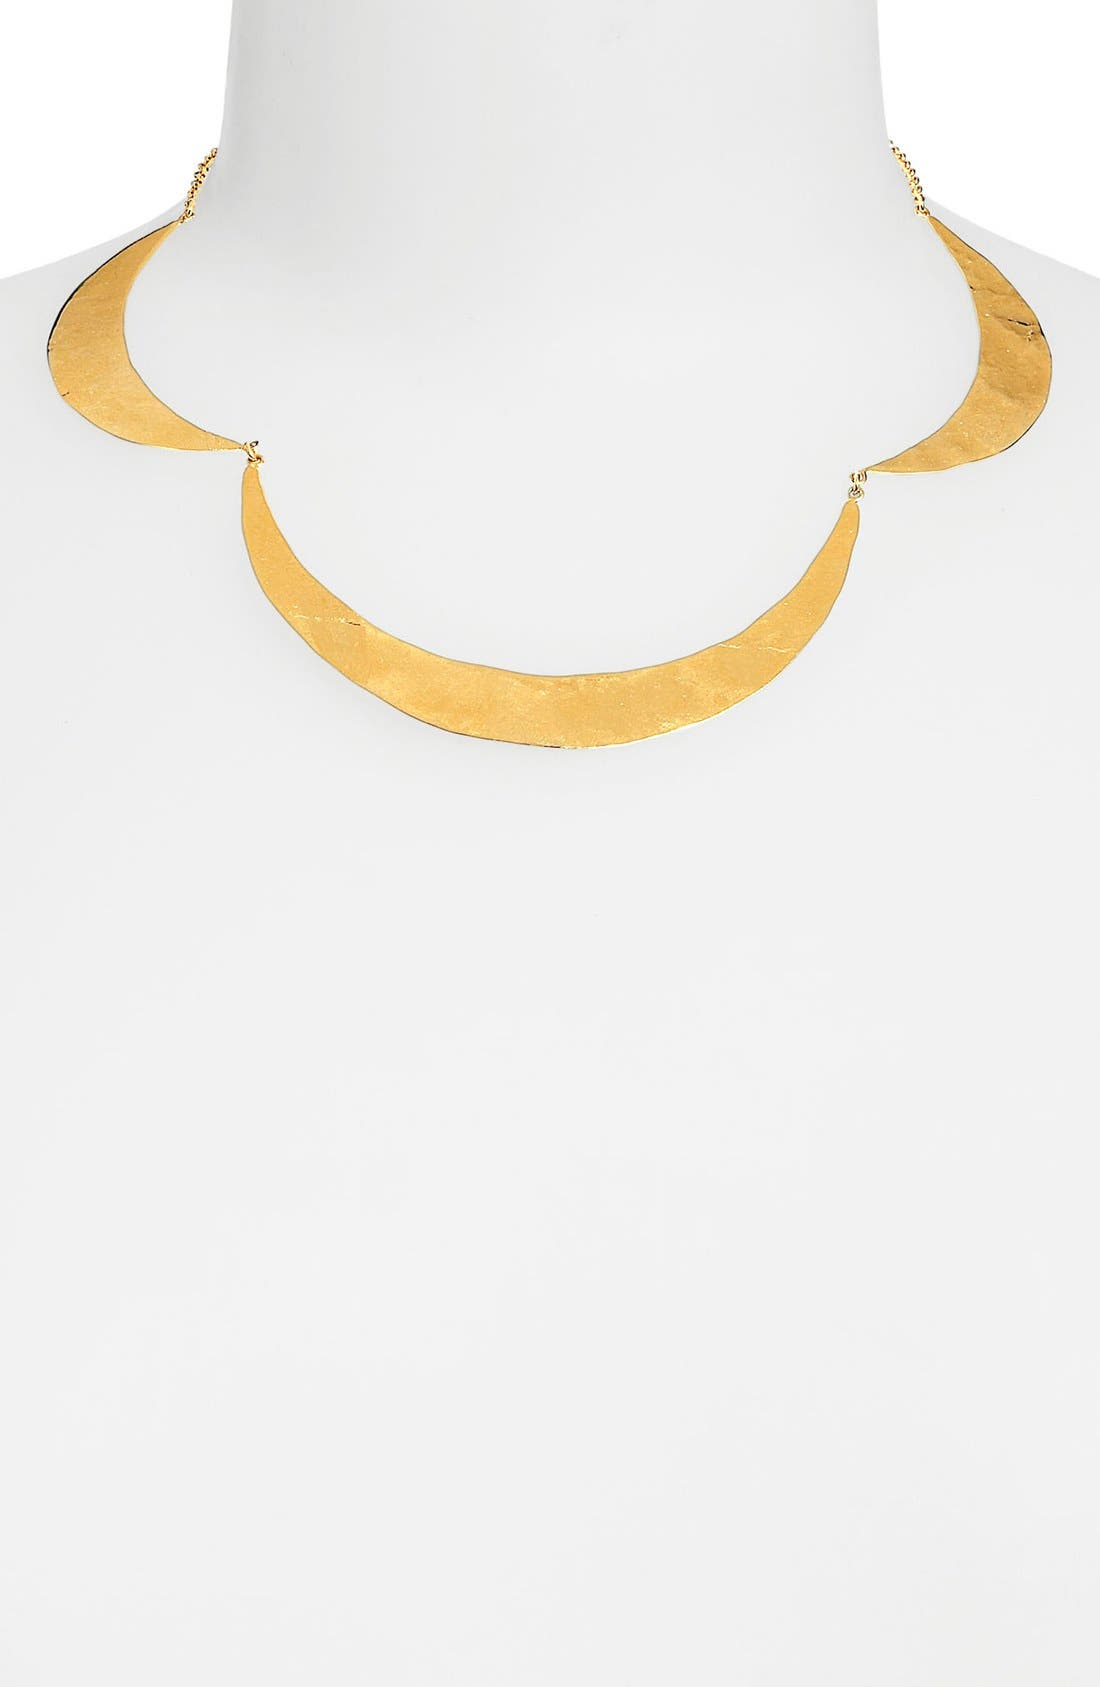 Main Image - Argento Vivo Hammered Crescent Collar Necklace